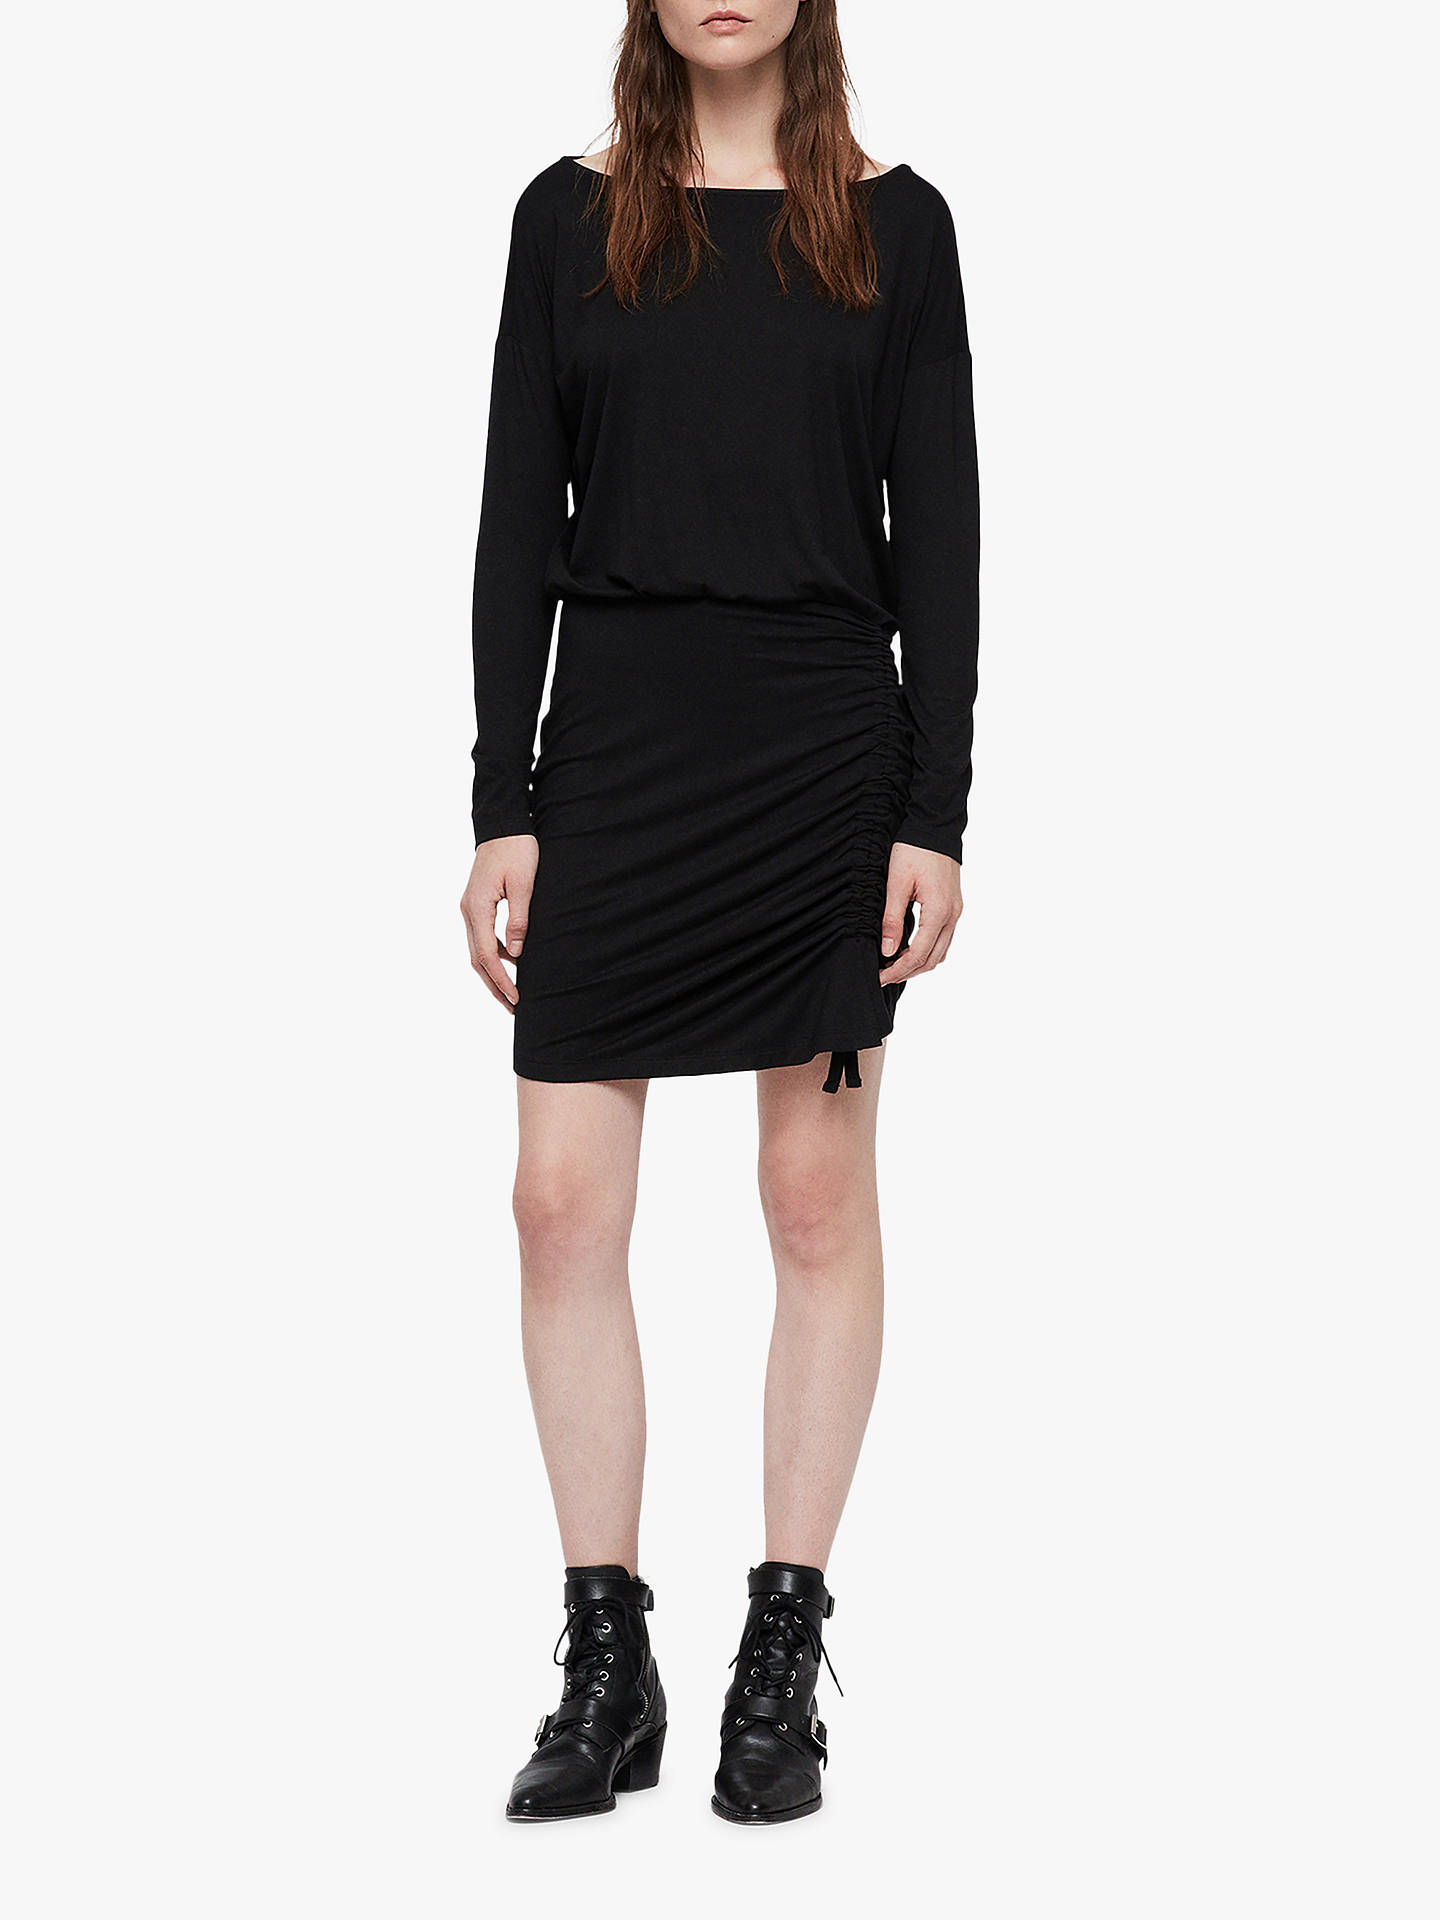 BuyAllSaints Tavi Ruched Long Sleeve Dress, Black, L Online at johnlewis.com